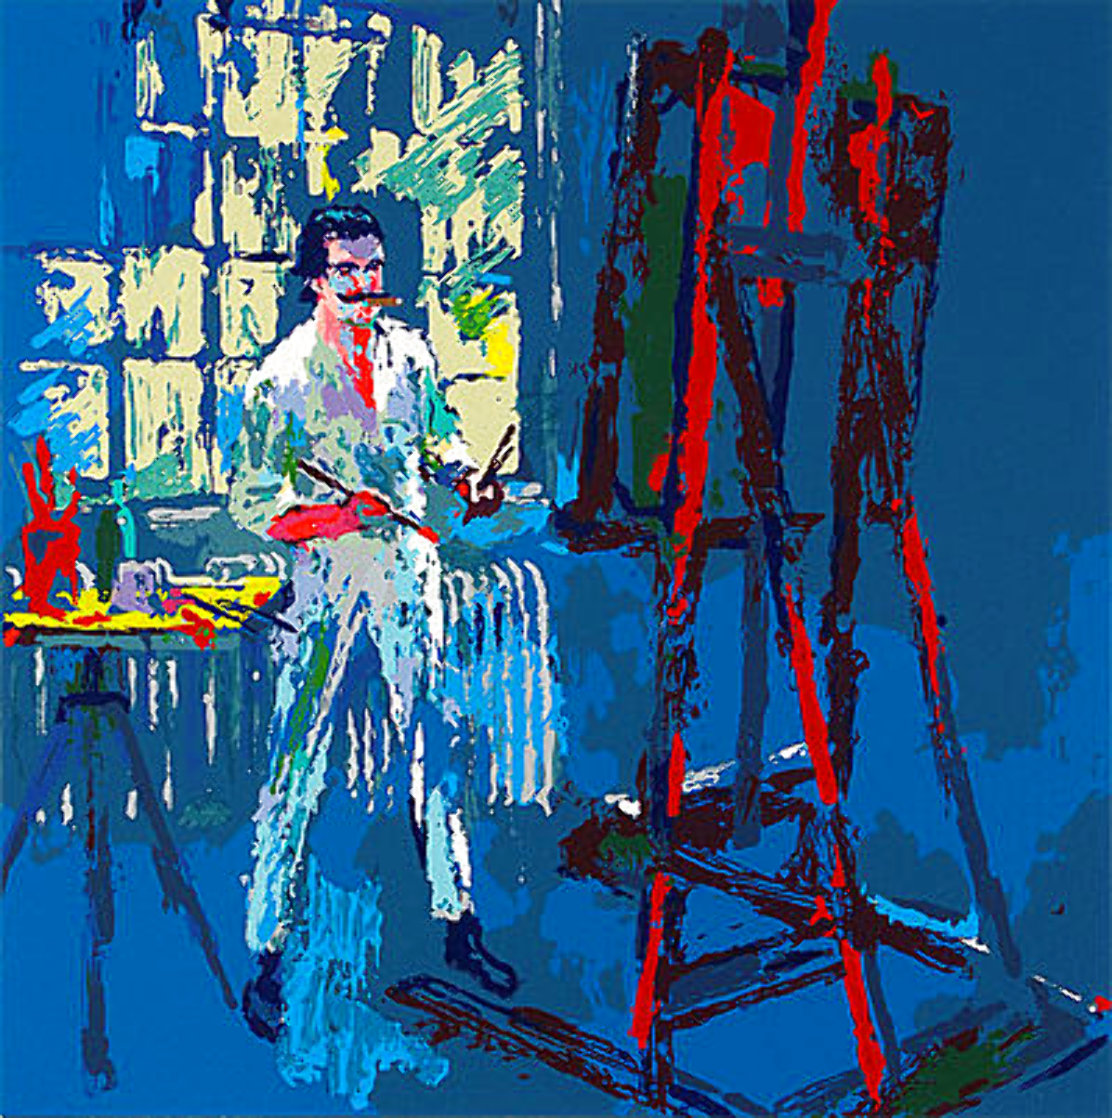 Self Portrait #1 1990 Limited Edition Print by LeRoy Neiman